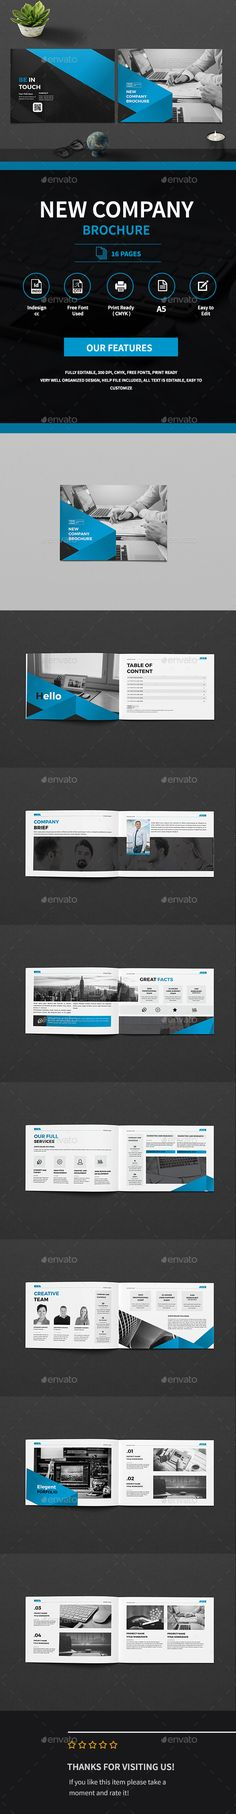 A5 Business Company Brochure - Corporate Brochures Download here : https://graphicriver.net/item/a5-business-company-brochure/19275574?s_rank=116&ref=Al-fatih